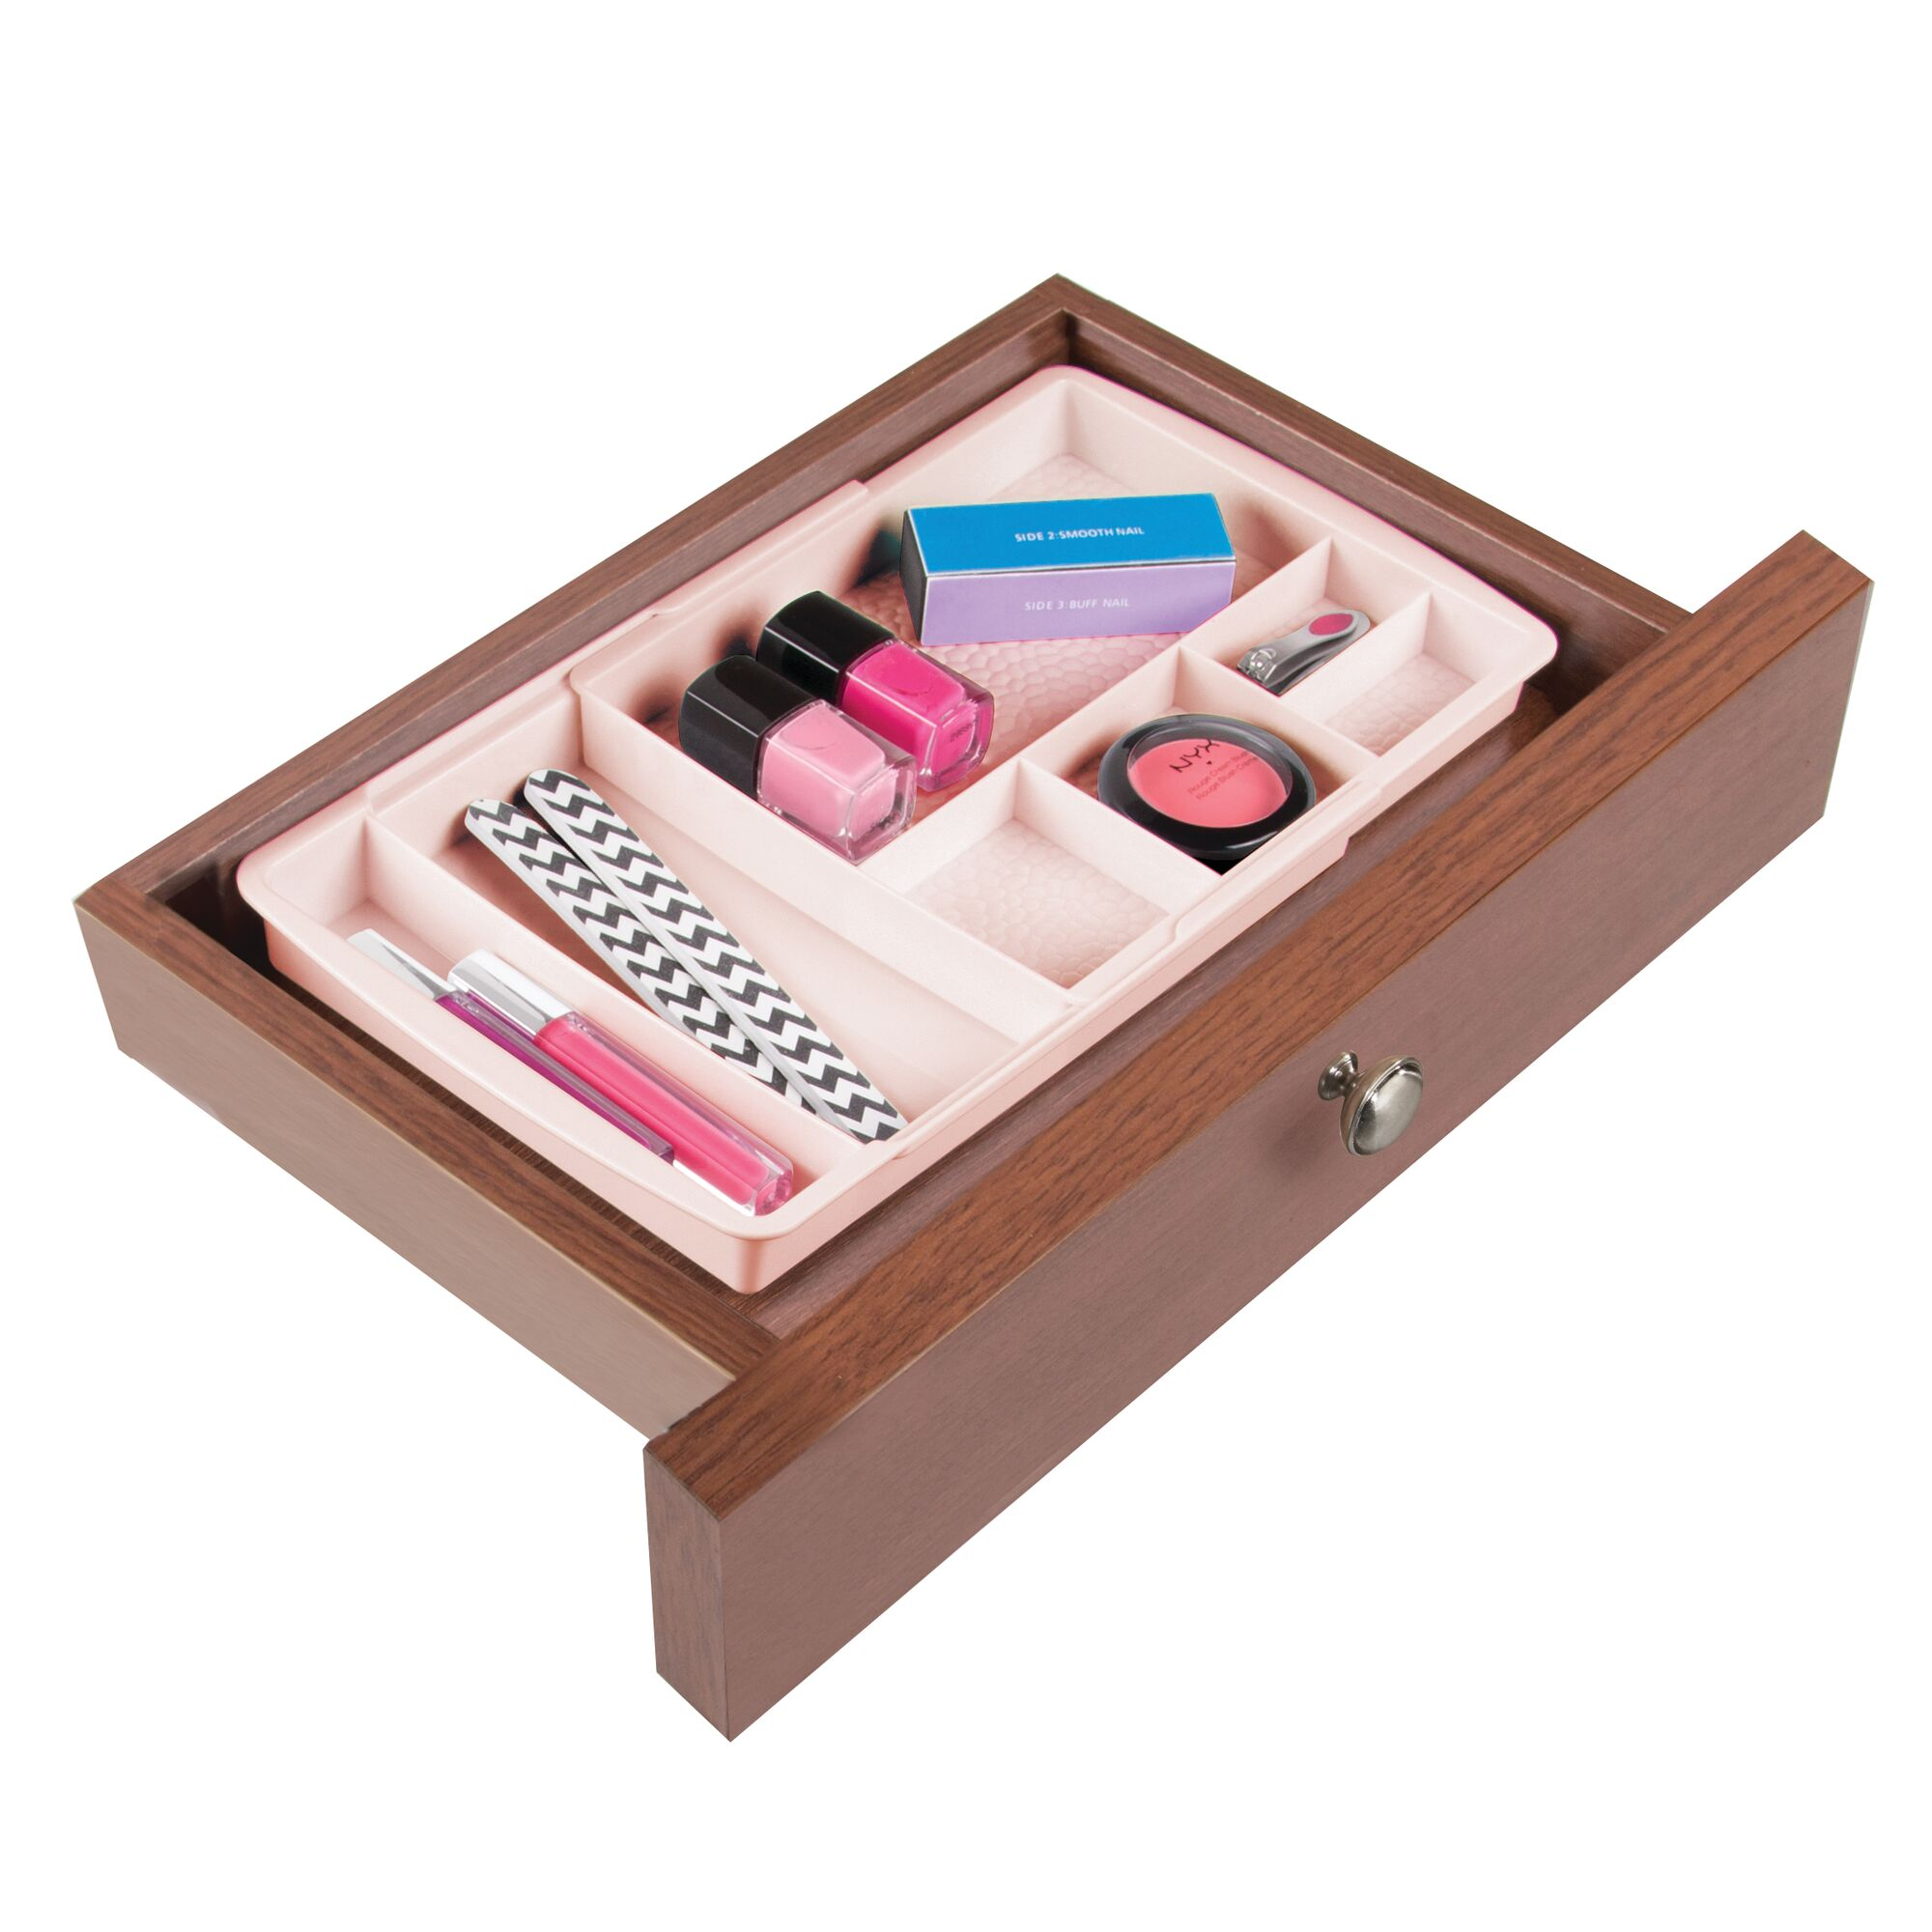 mDesign-Expandable-Makeup-Organizer-Tray-for-Bathroom-Drawers thumbnail 54